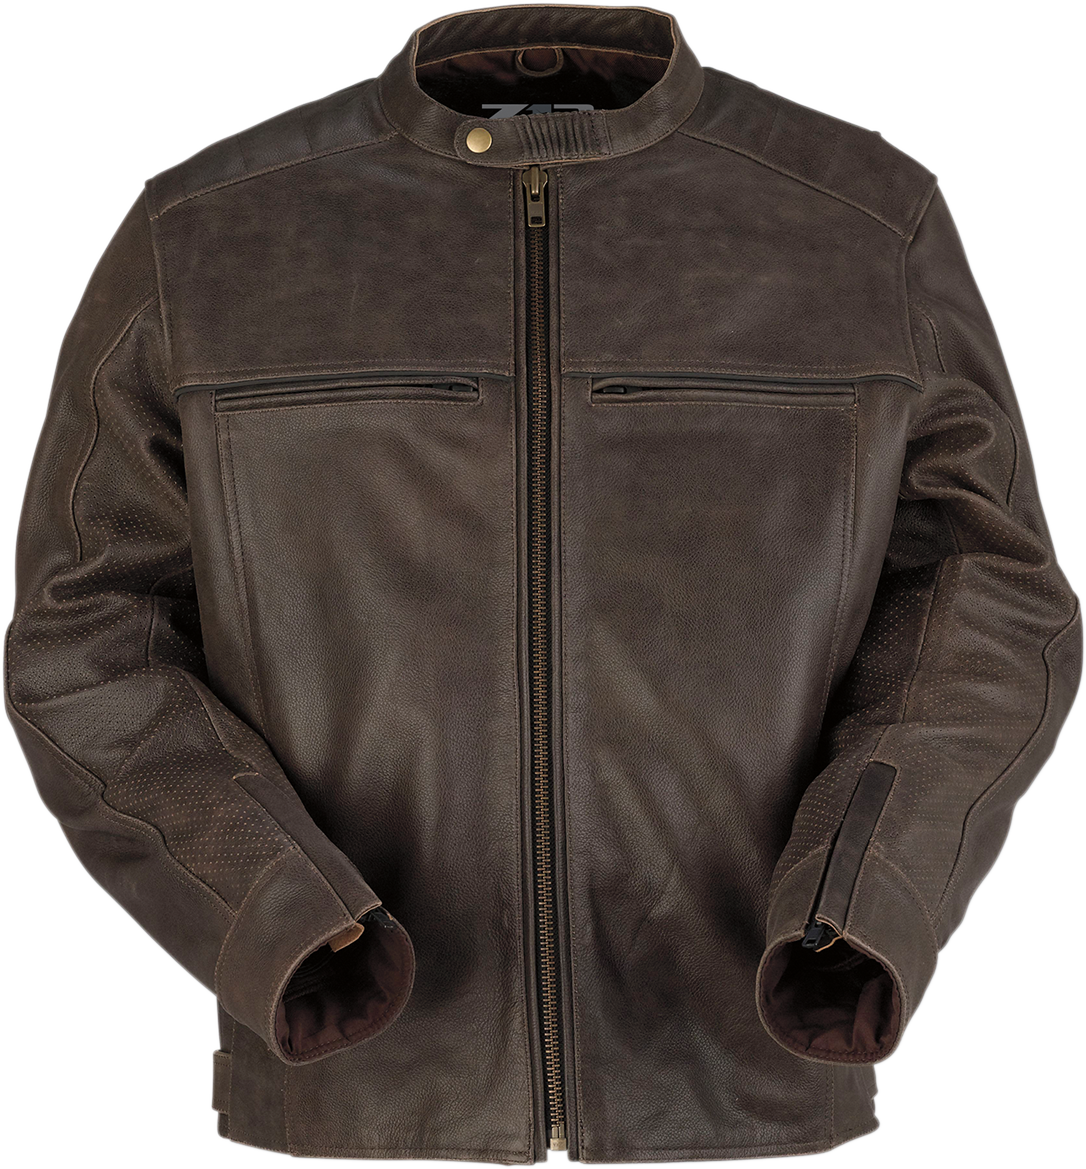 Z1R Brown Mens Indiana Leather Mesh Motorcycle Riding Street Racing Jacket